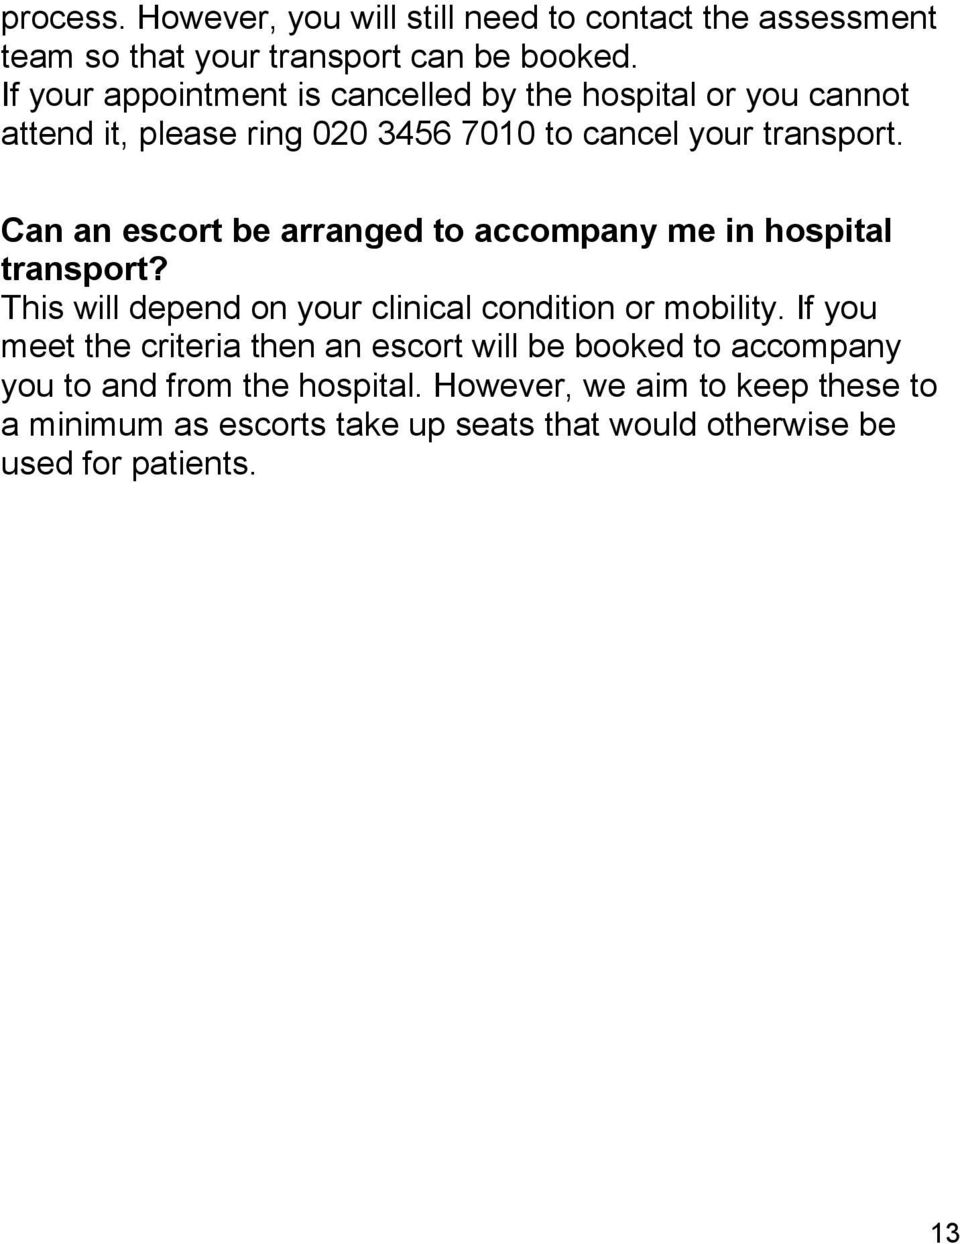 Can an escort be arranged to accompany me in hospital transport? This will depend on your clinical condition or mobility.